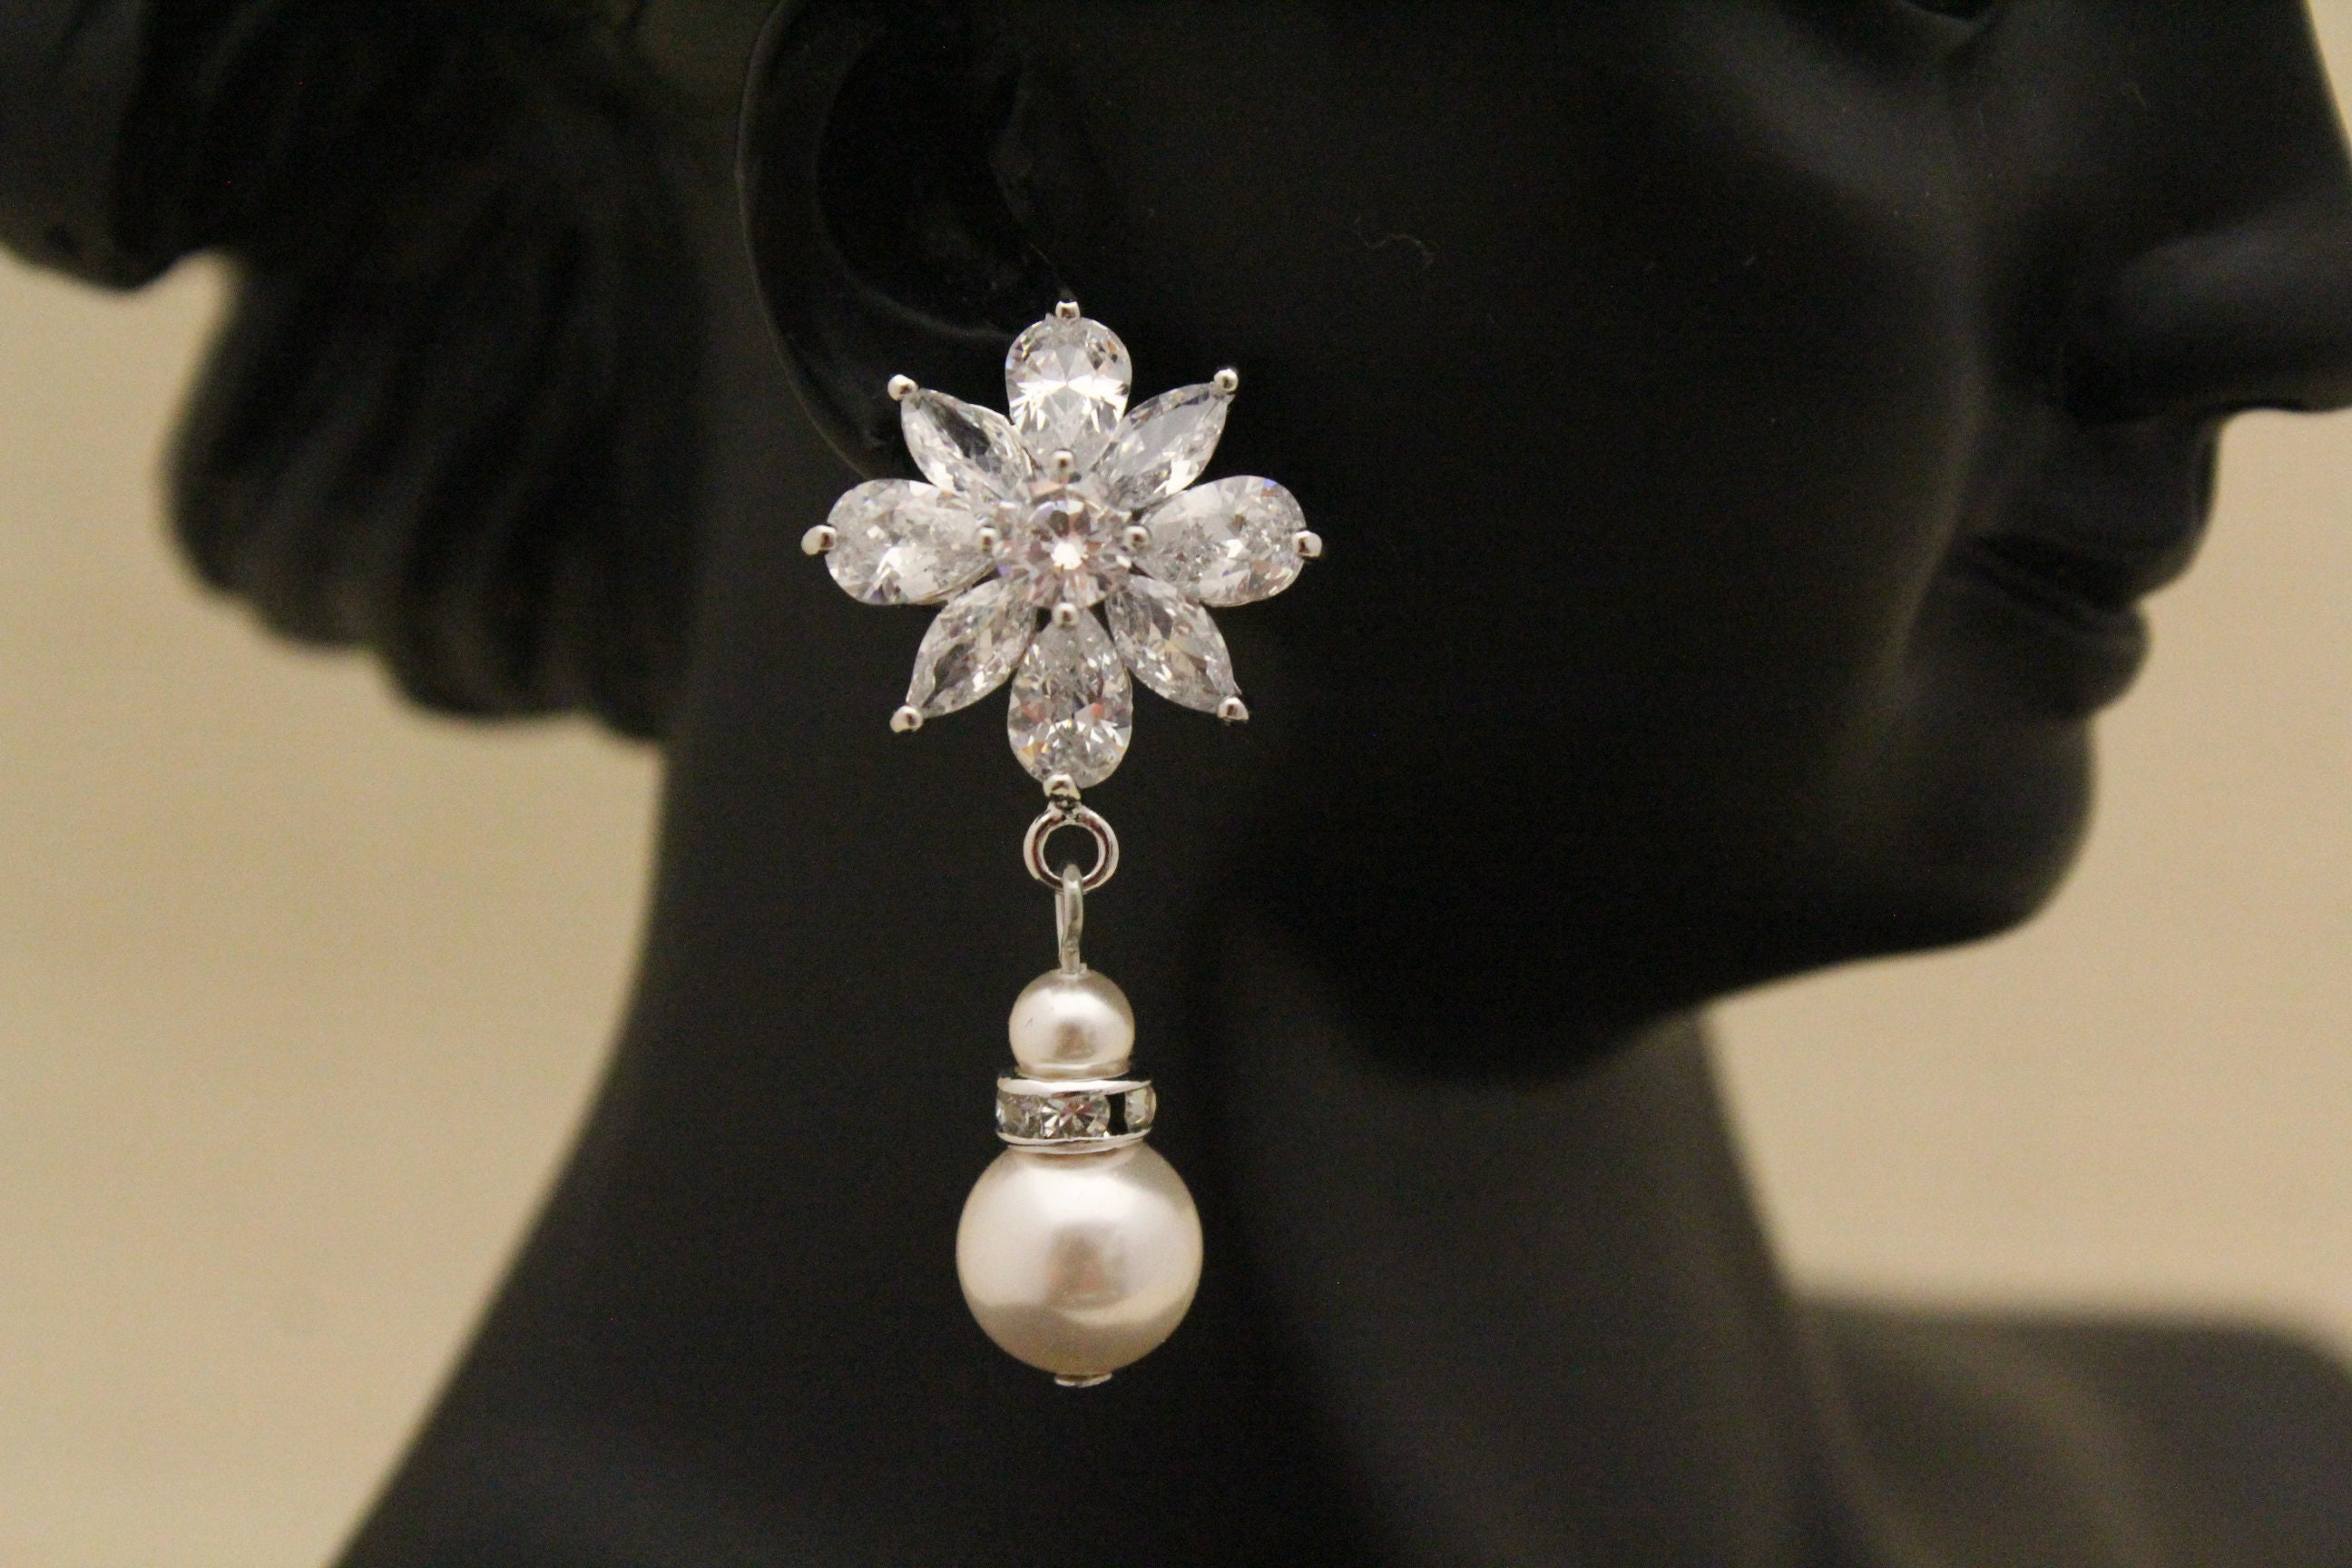 Vintage Style Bridal Earrings Chandelier Wedding Earrings Art Deco